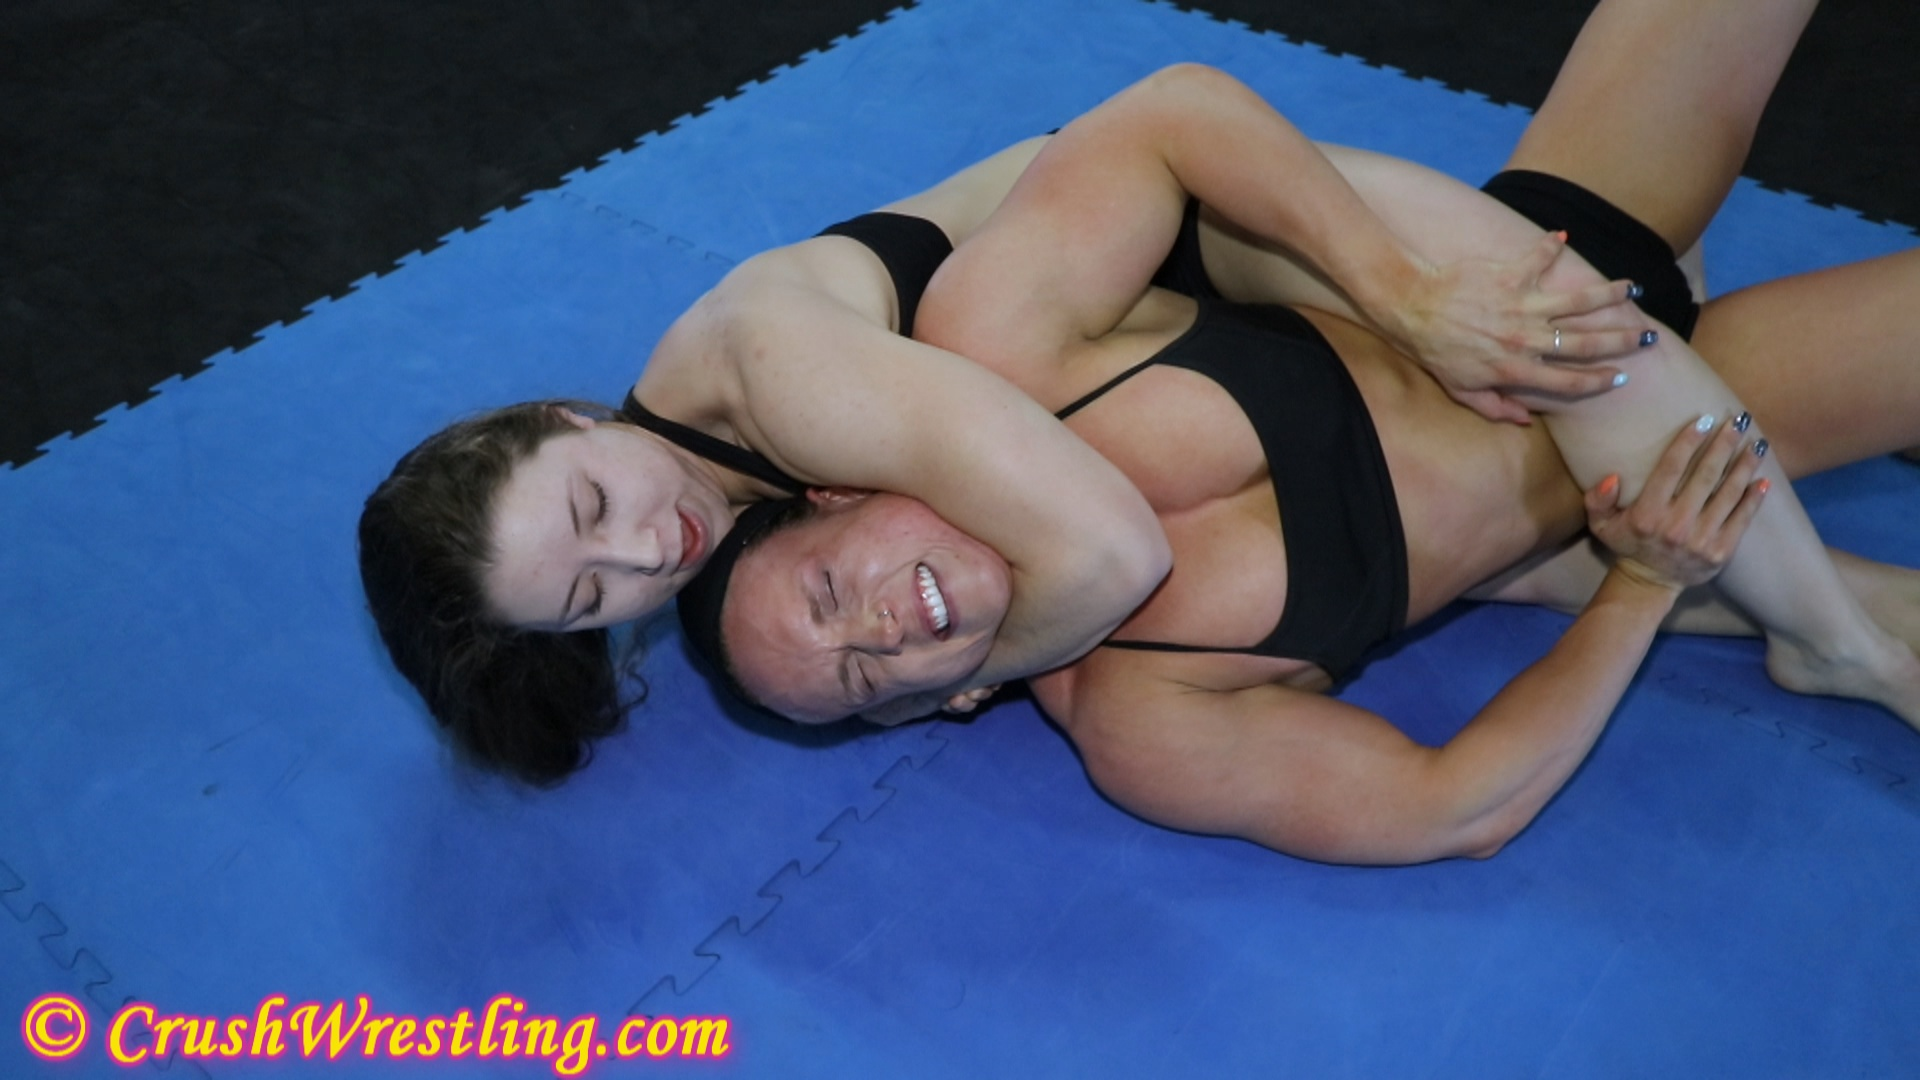 Nude Female Wrestling Clips 6